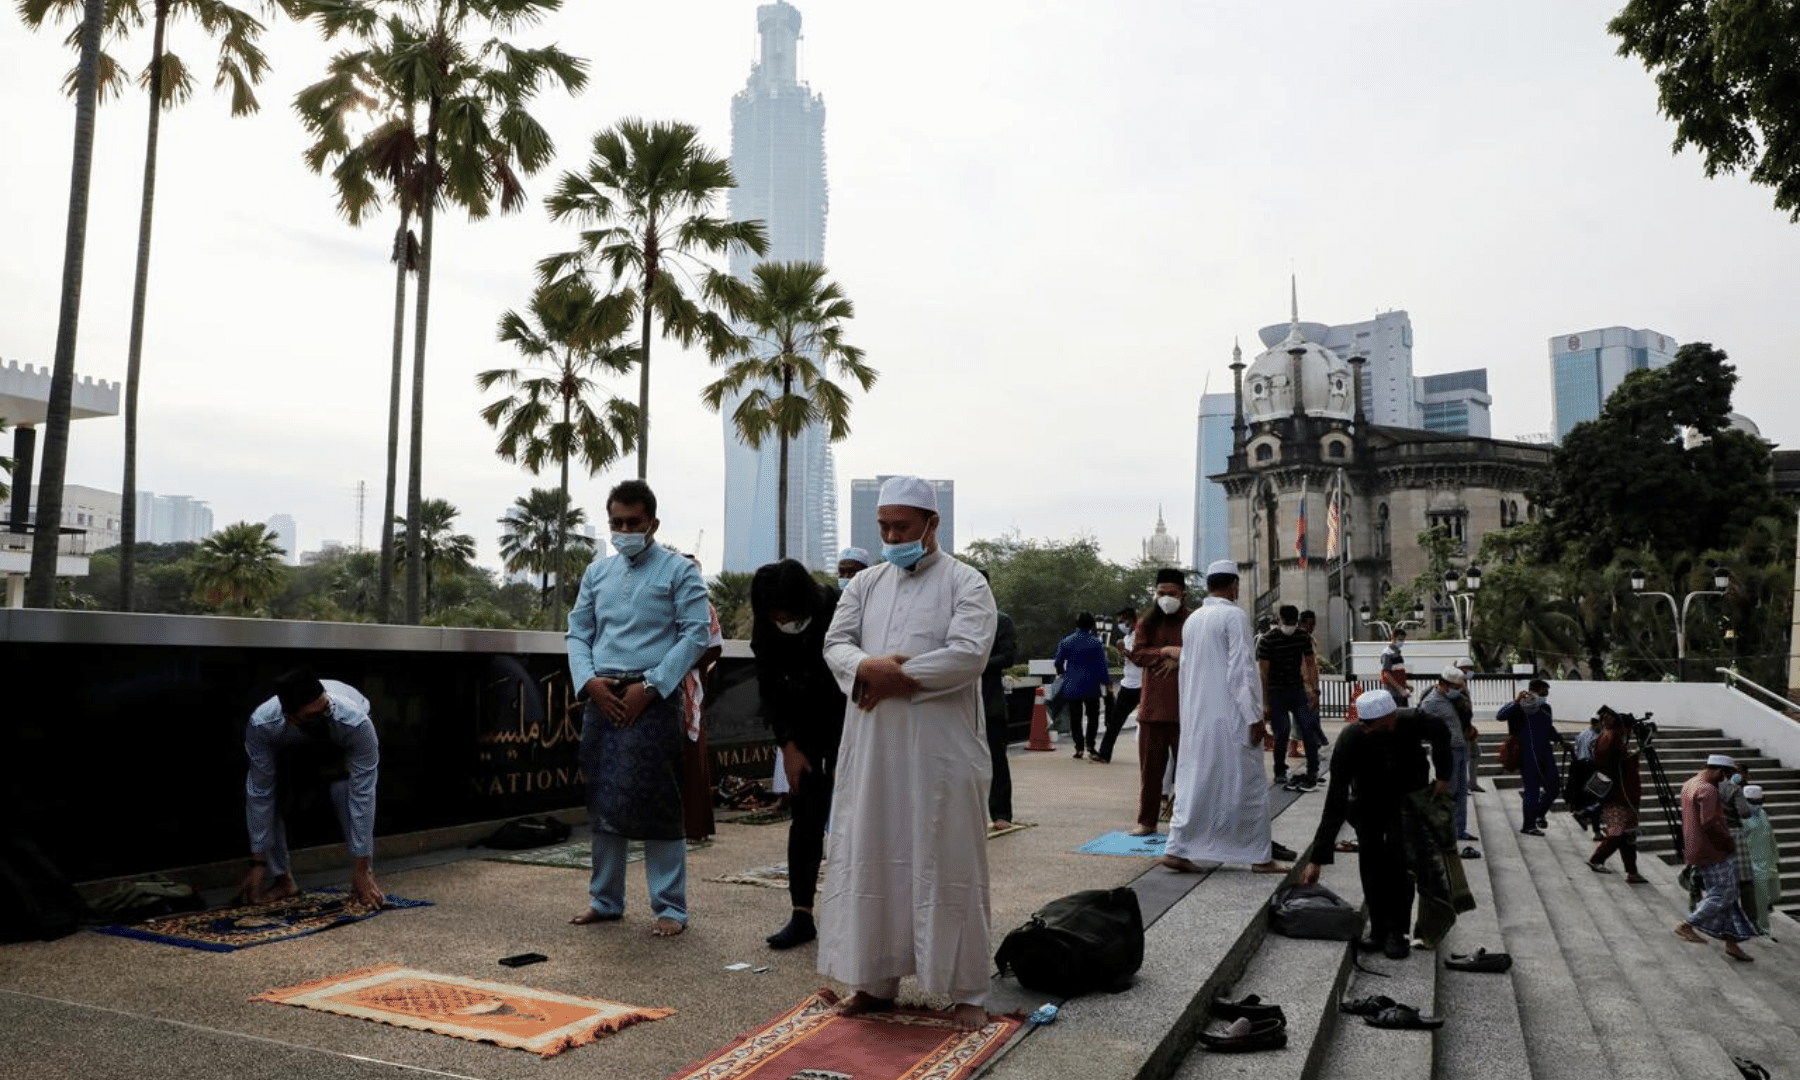 Muslims disperse after they were warned by police officers outside the closed National Mosque while celebrating Eidul Fitr in Kuala Lampur, Malaysia. —Reuters